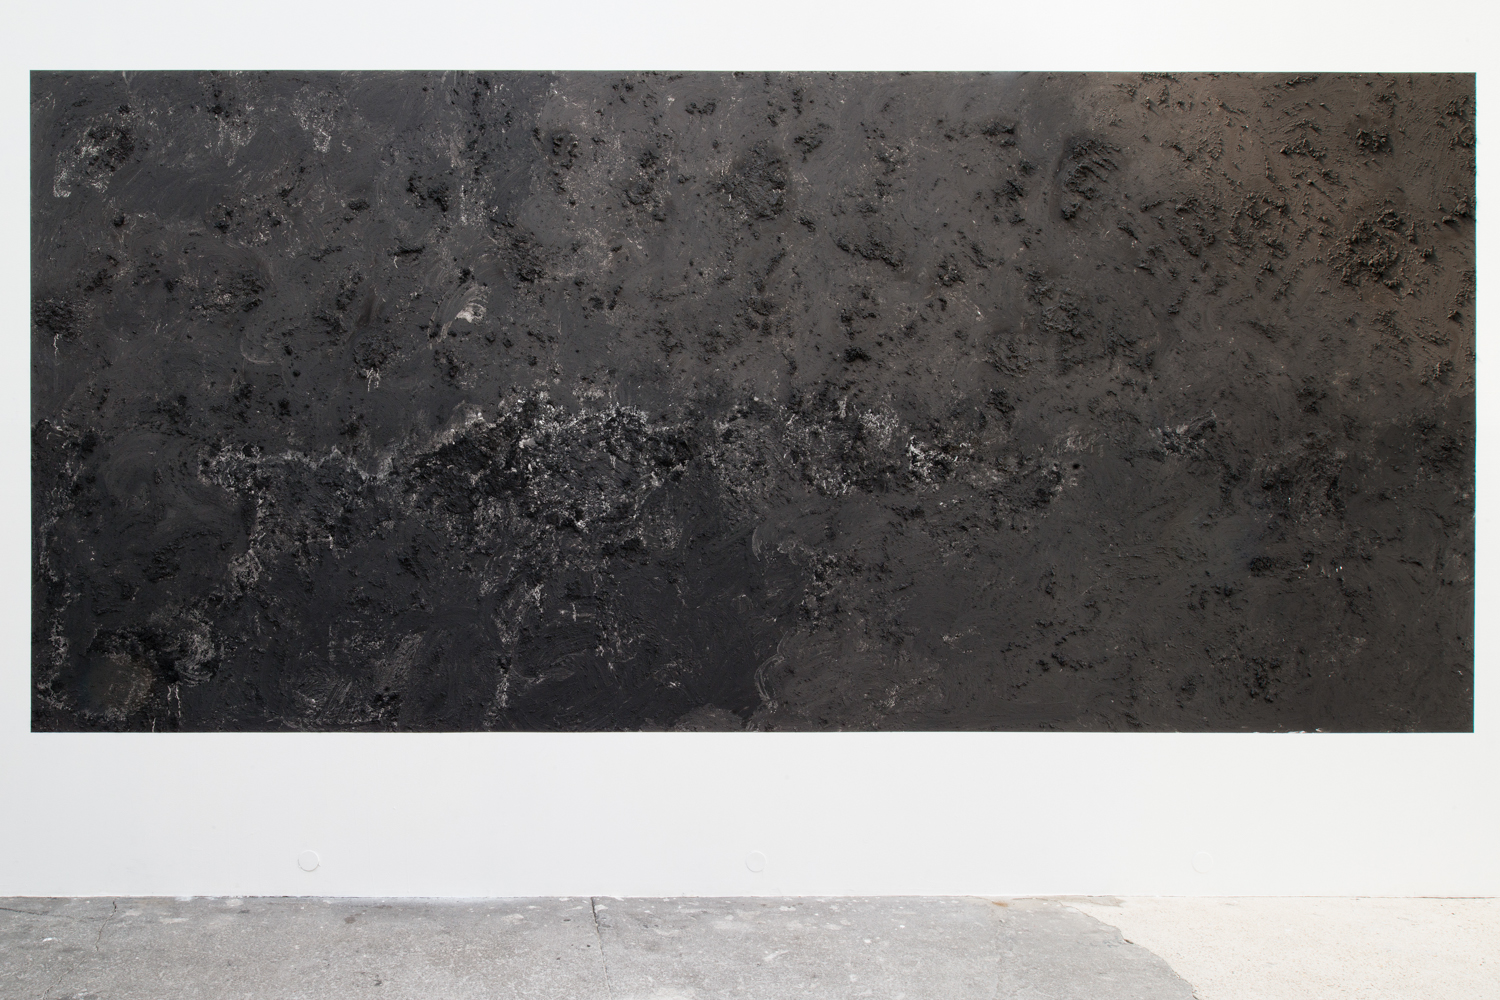 Brendan Lynch It Took Time to See 2013 Cigarette ash applied to wall 236 x 110 inches